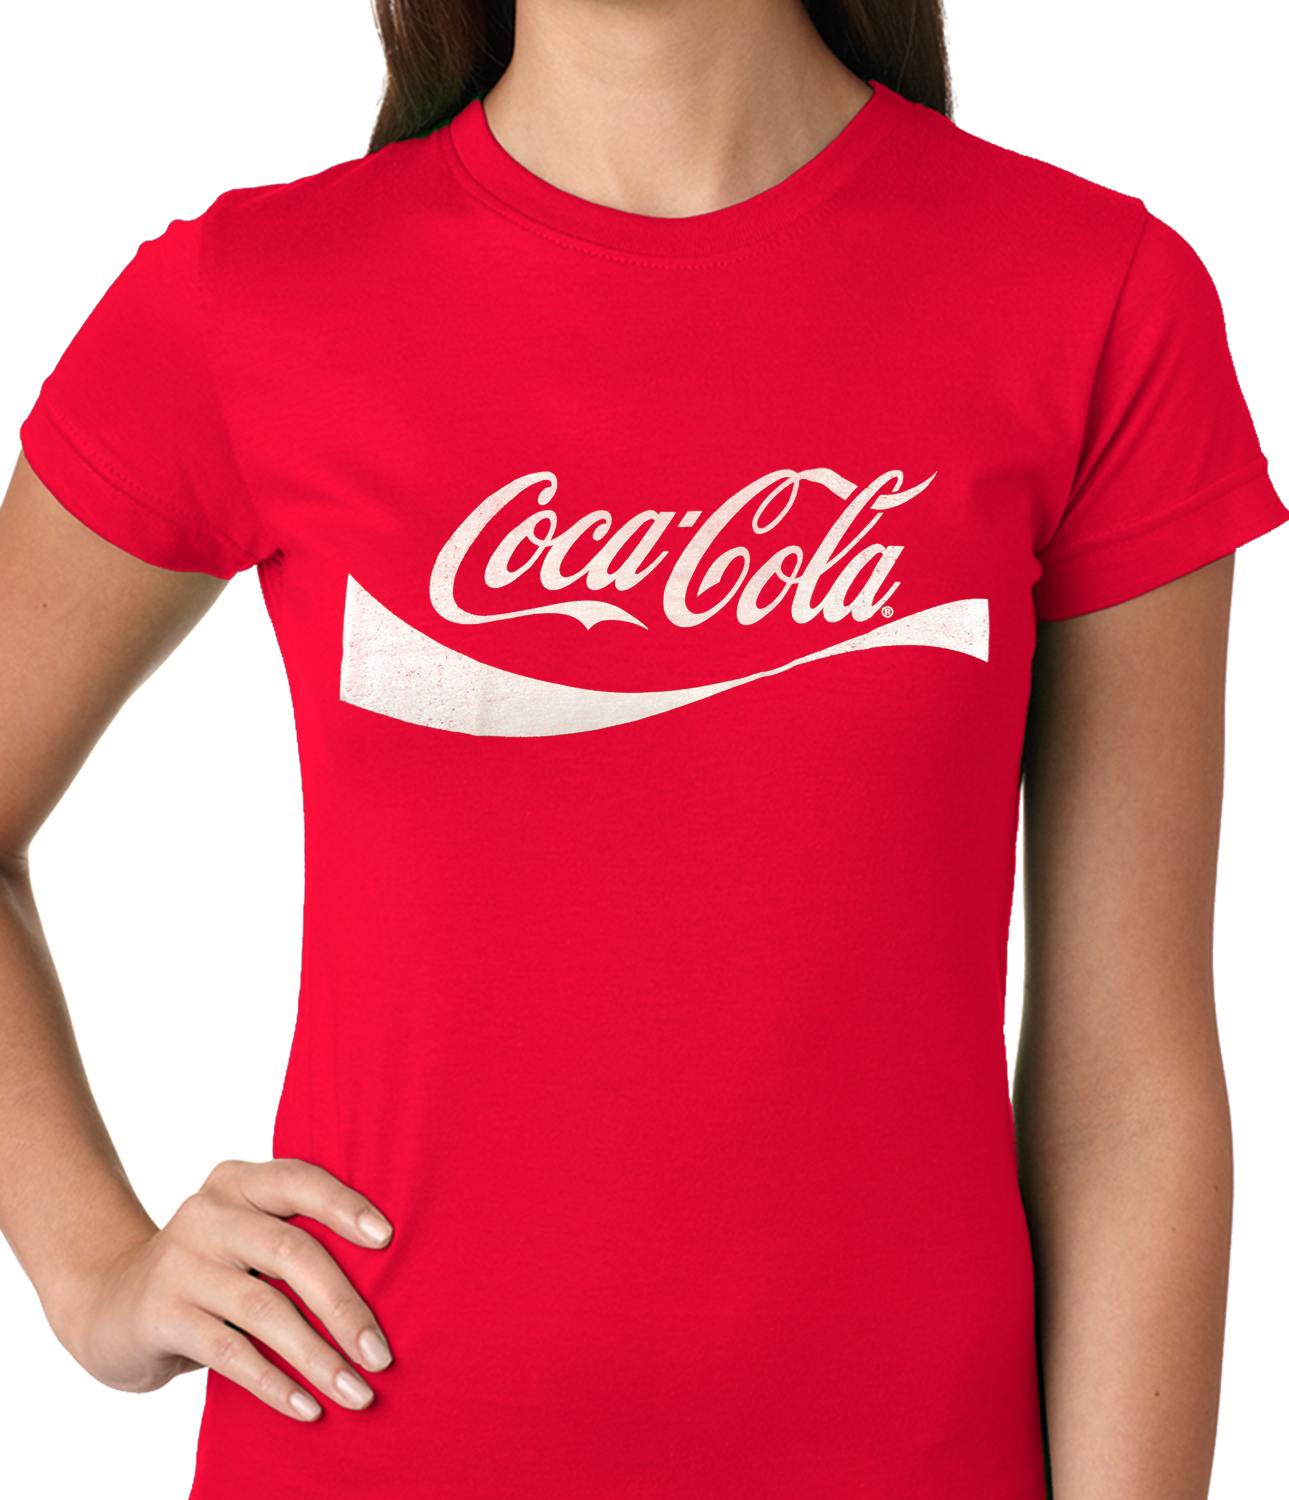 official vintage coca cola ladies t shirt. Black Bedroom Furniture Sets. Home Design Ideas